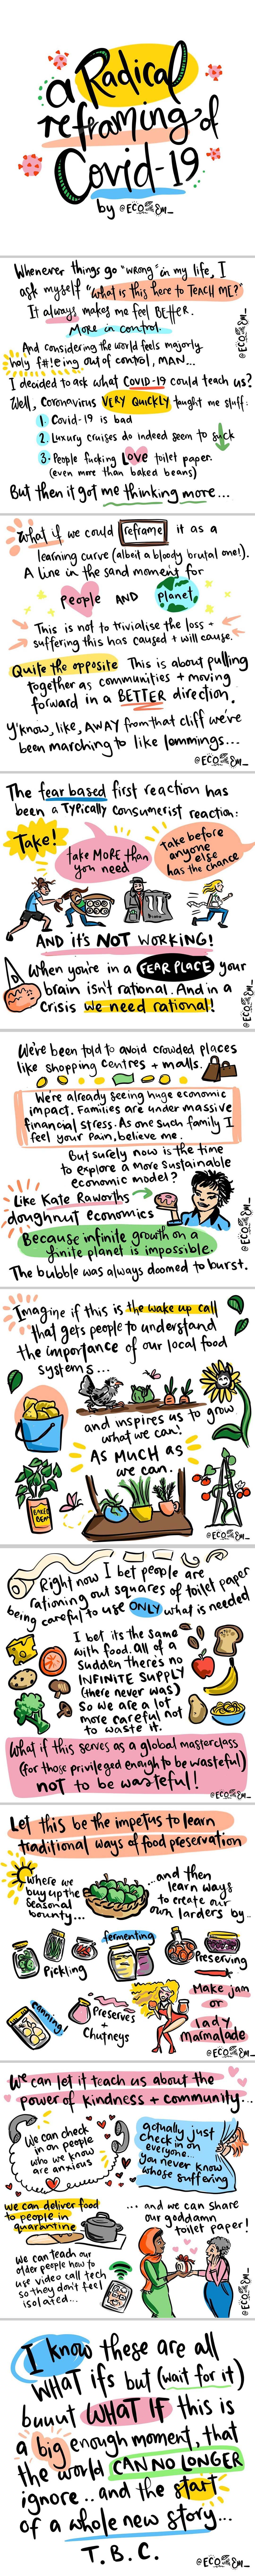 A Radical Reframe of Covid-19 by EcowithEm | ecogreenlove